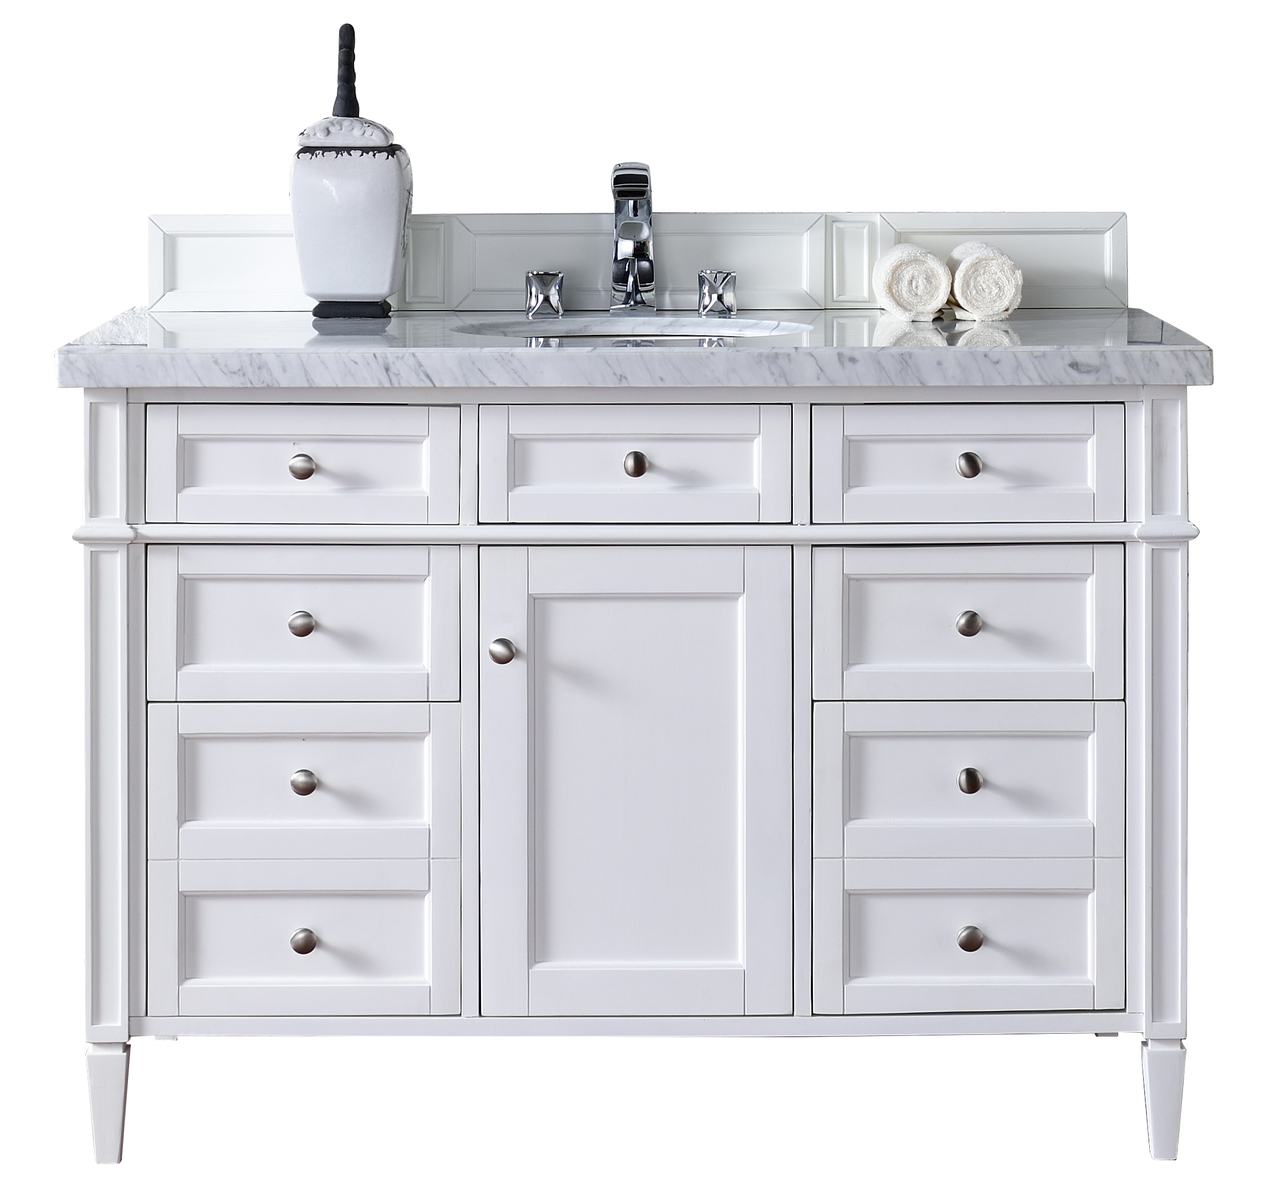 Contemporary 48 inch single bathroom vanity white finish 48 inch bathroom vanity